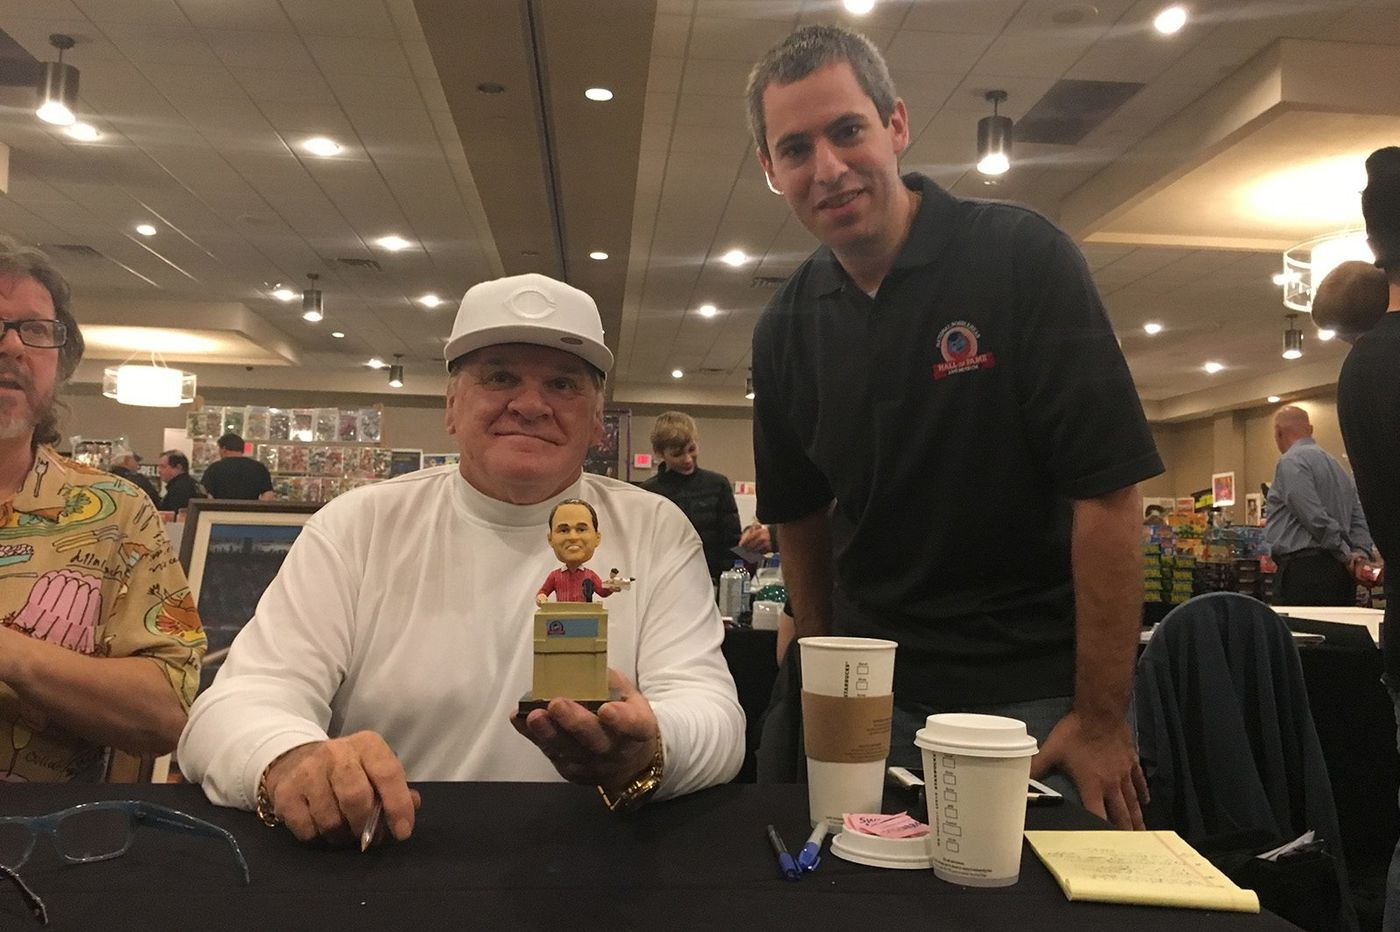 Former Phillies star Pete Rose has a familiar routine in Las Vegas: autographs and betting